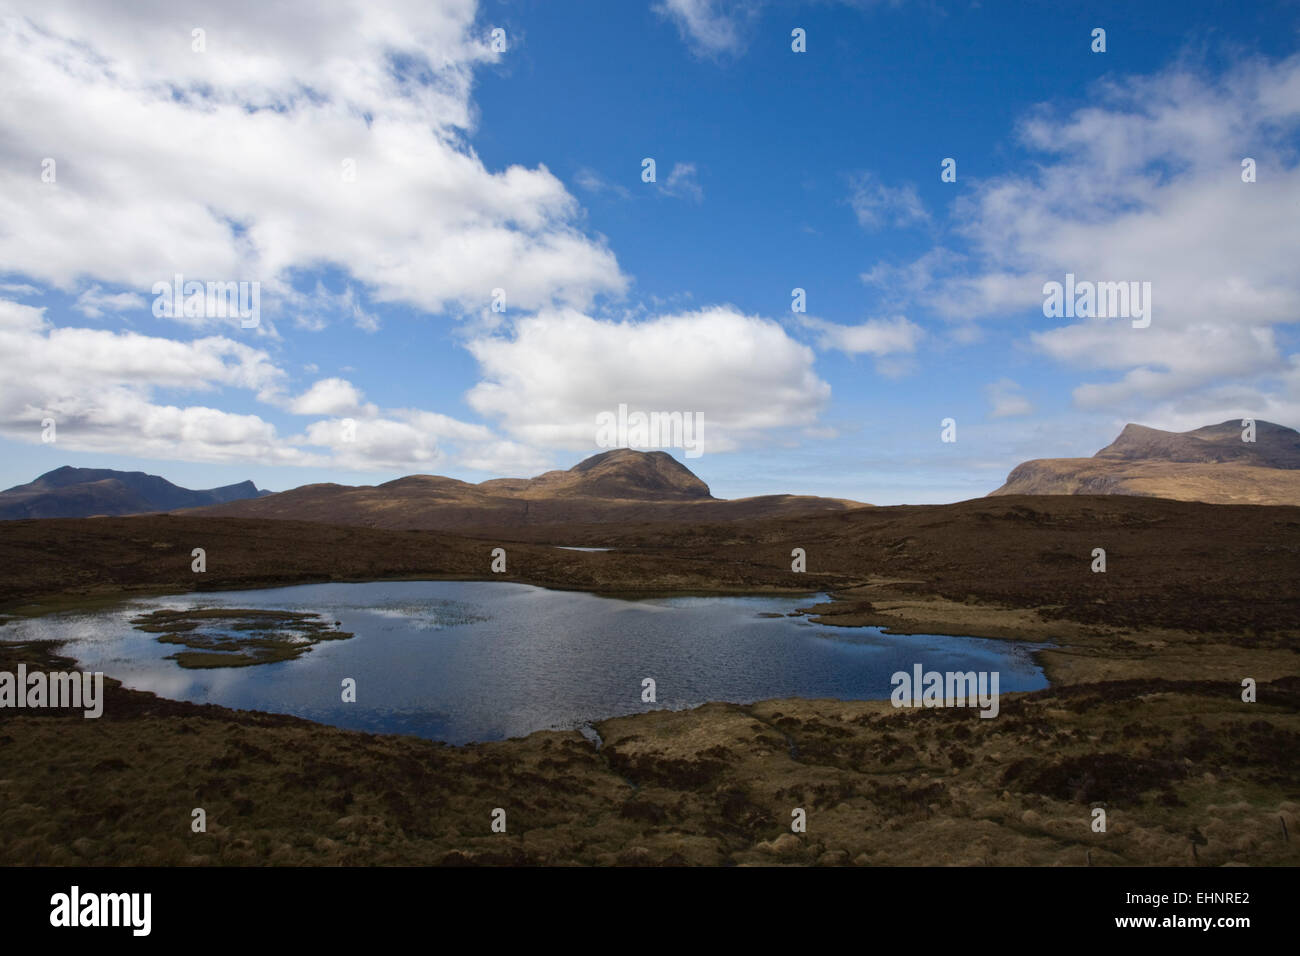 View of Cul Mor and Cul Beag from A835 (road to Knockan Crag),  Highlands, Scotland - Stock Image